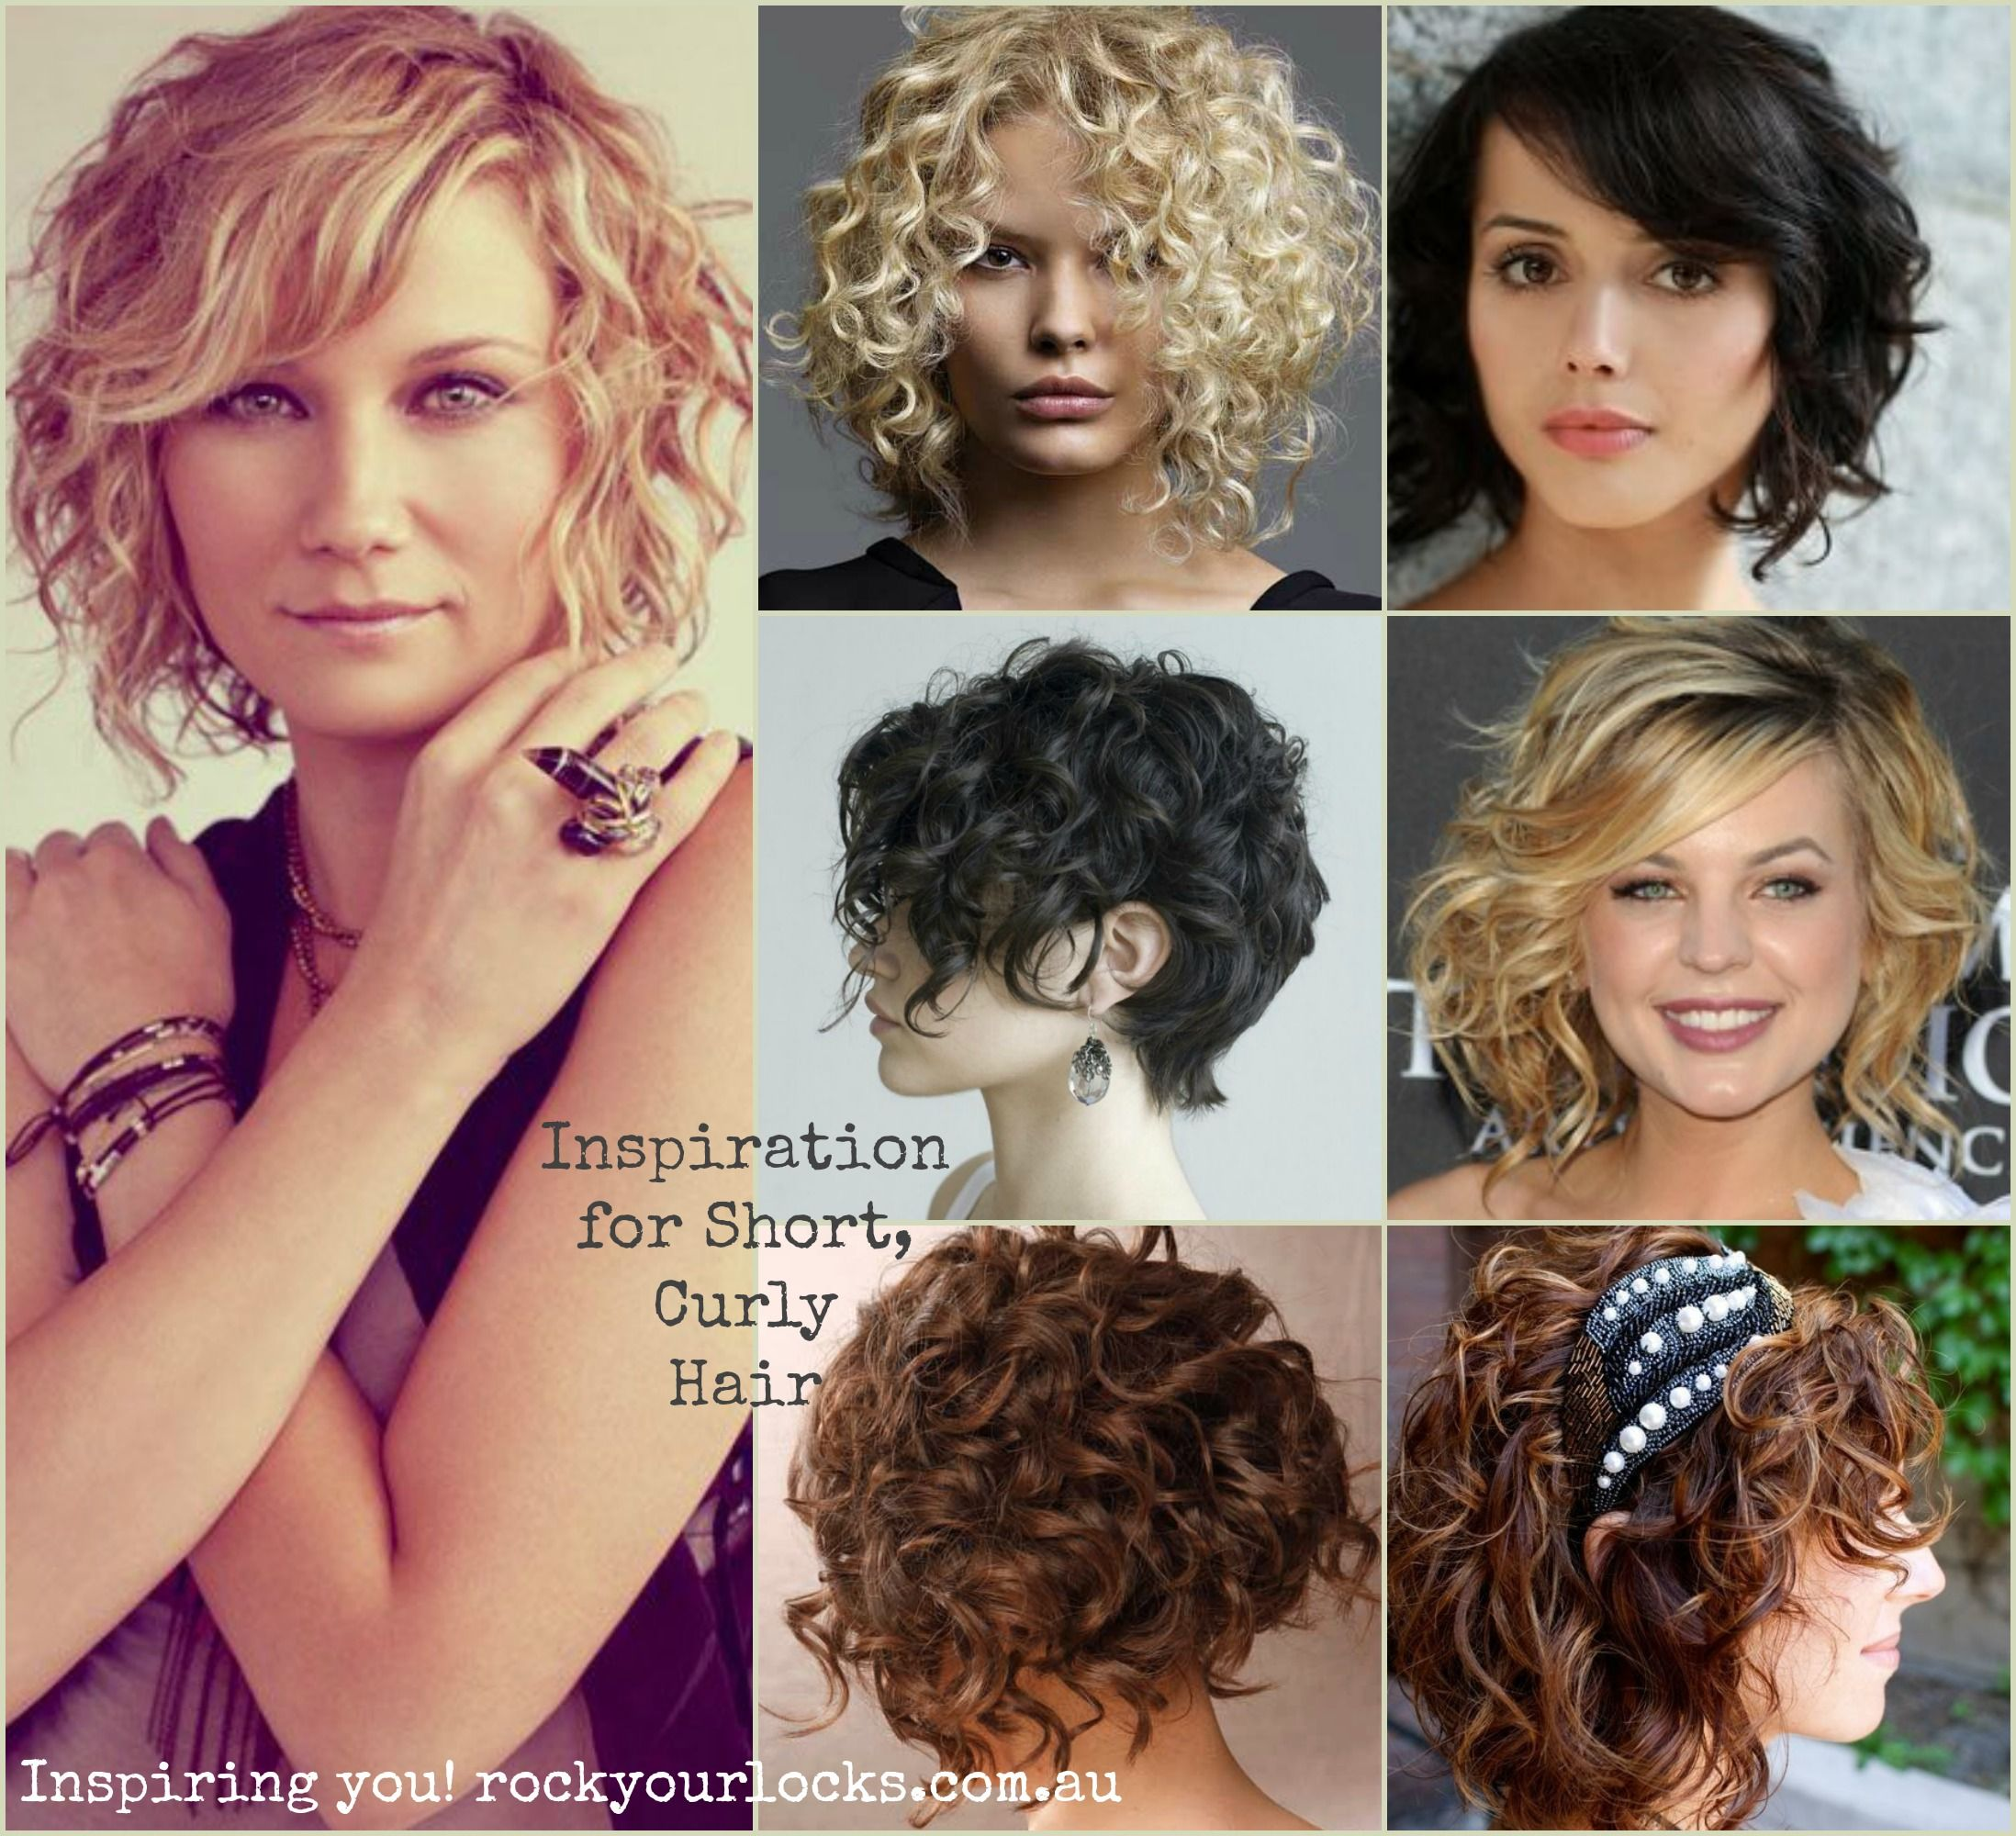 Haircuts for short curly hair particularly love the bottom right